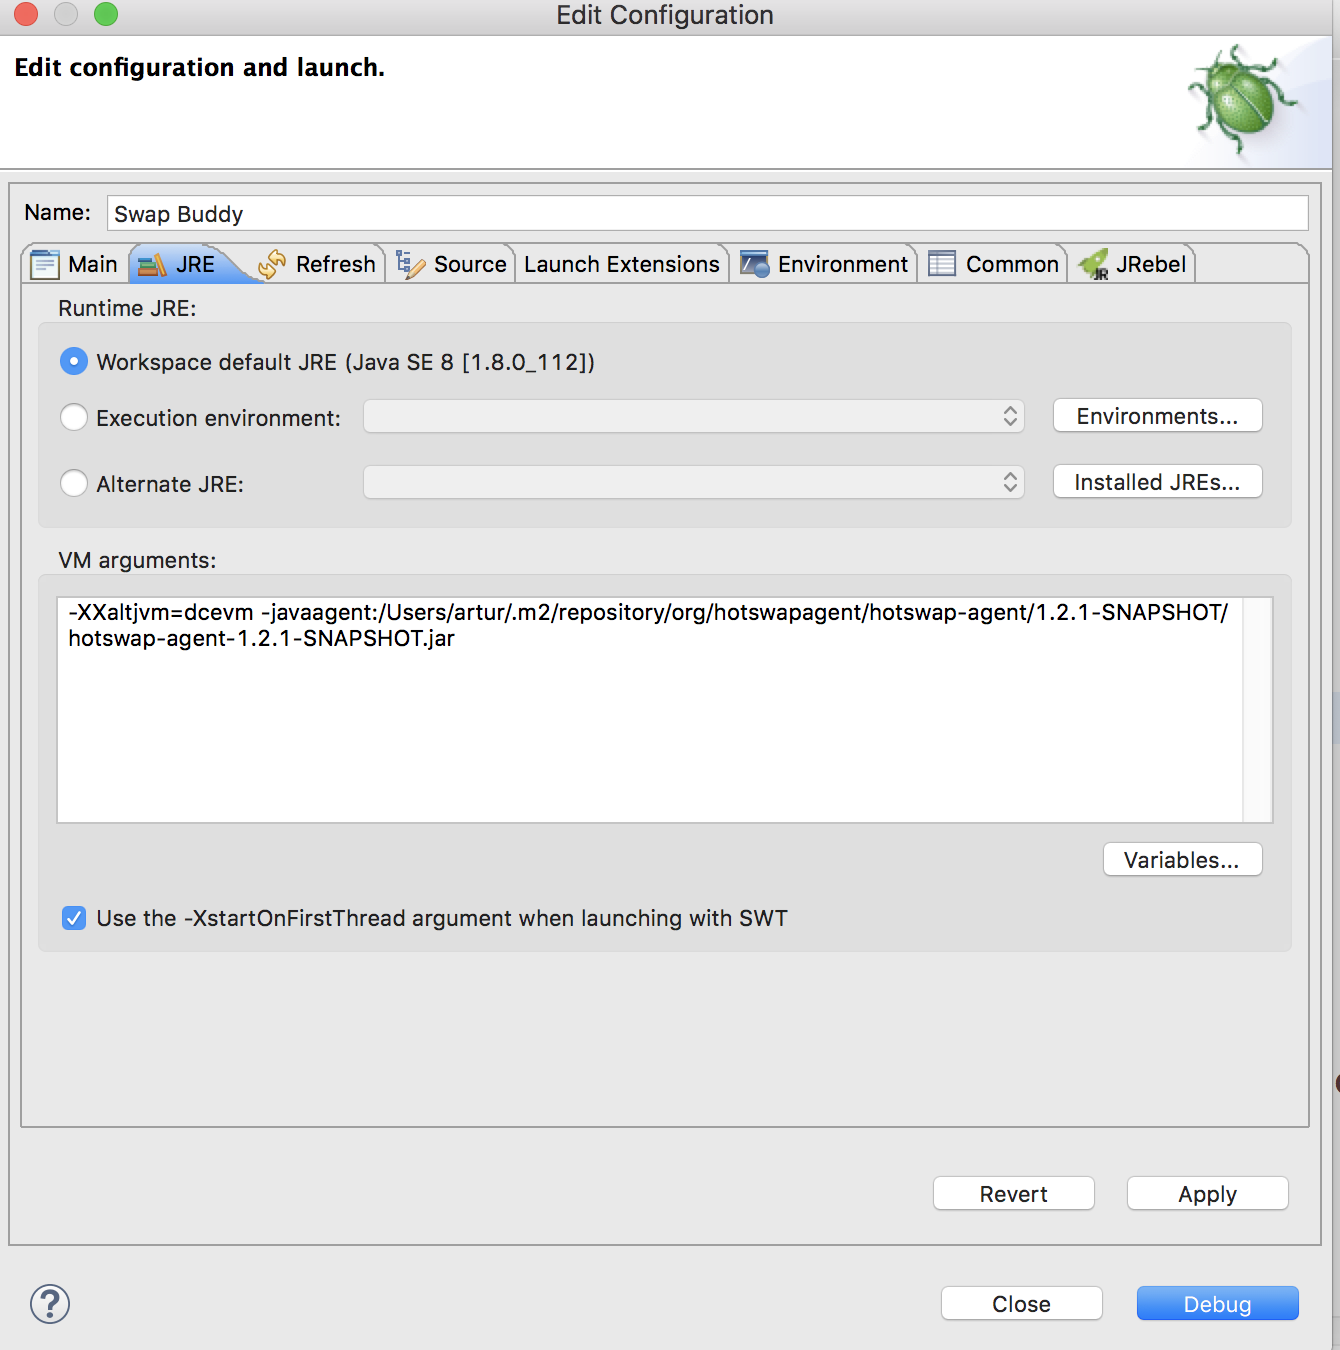 Screenshot of the Edit Configuration dialog in Eclipse